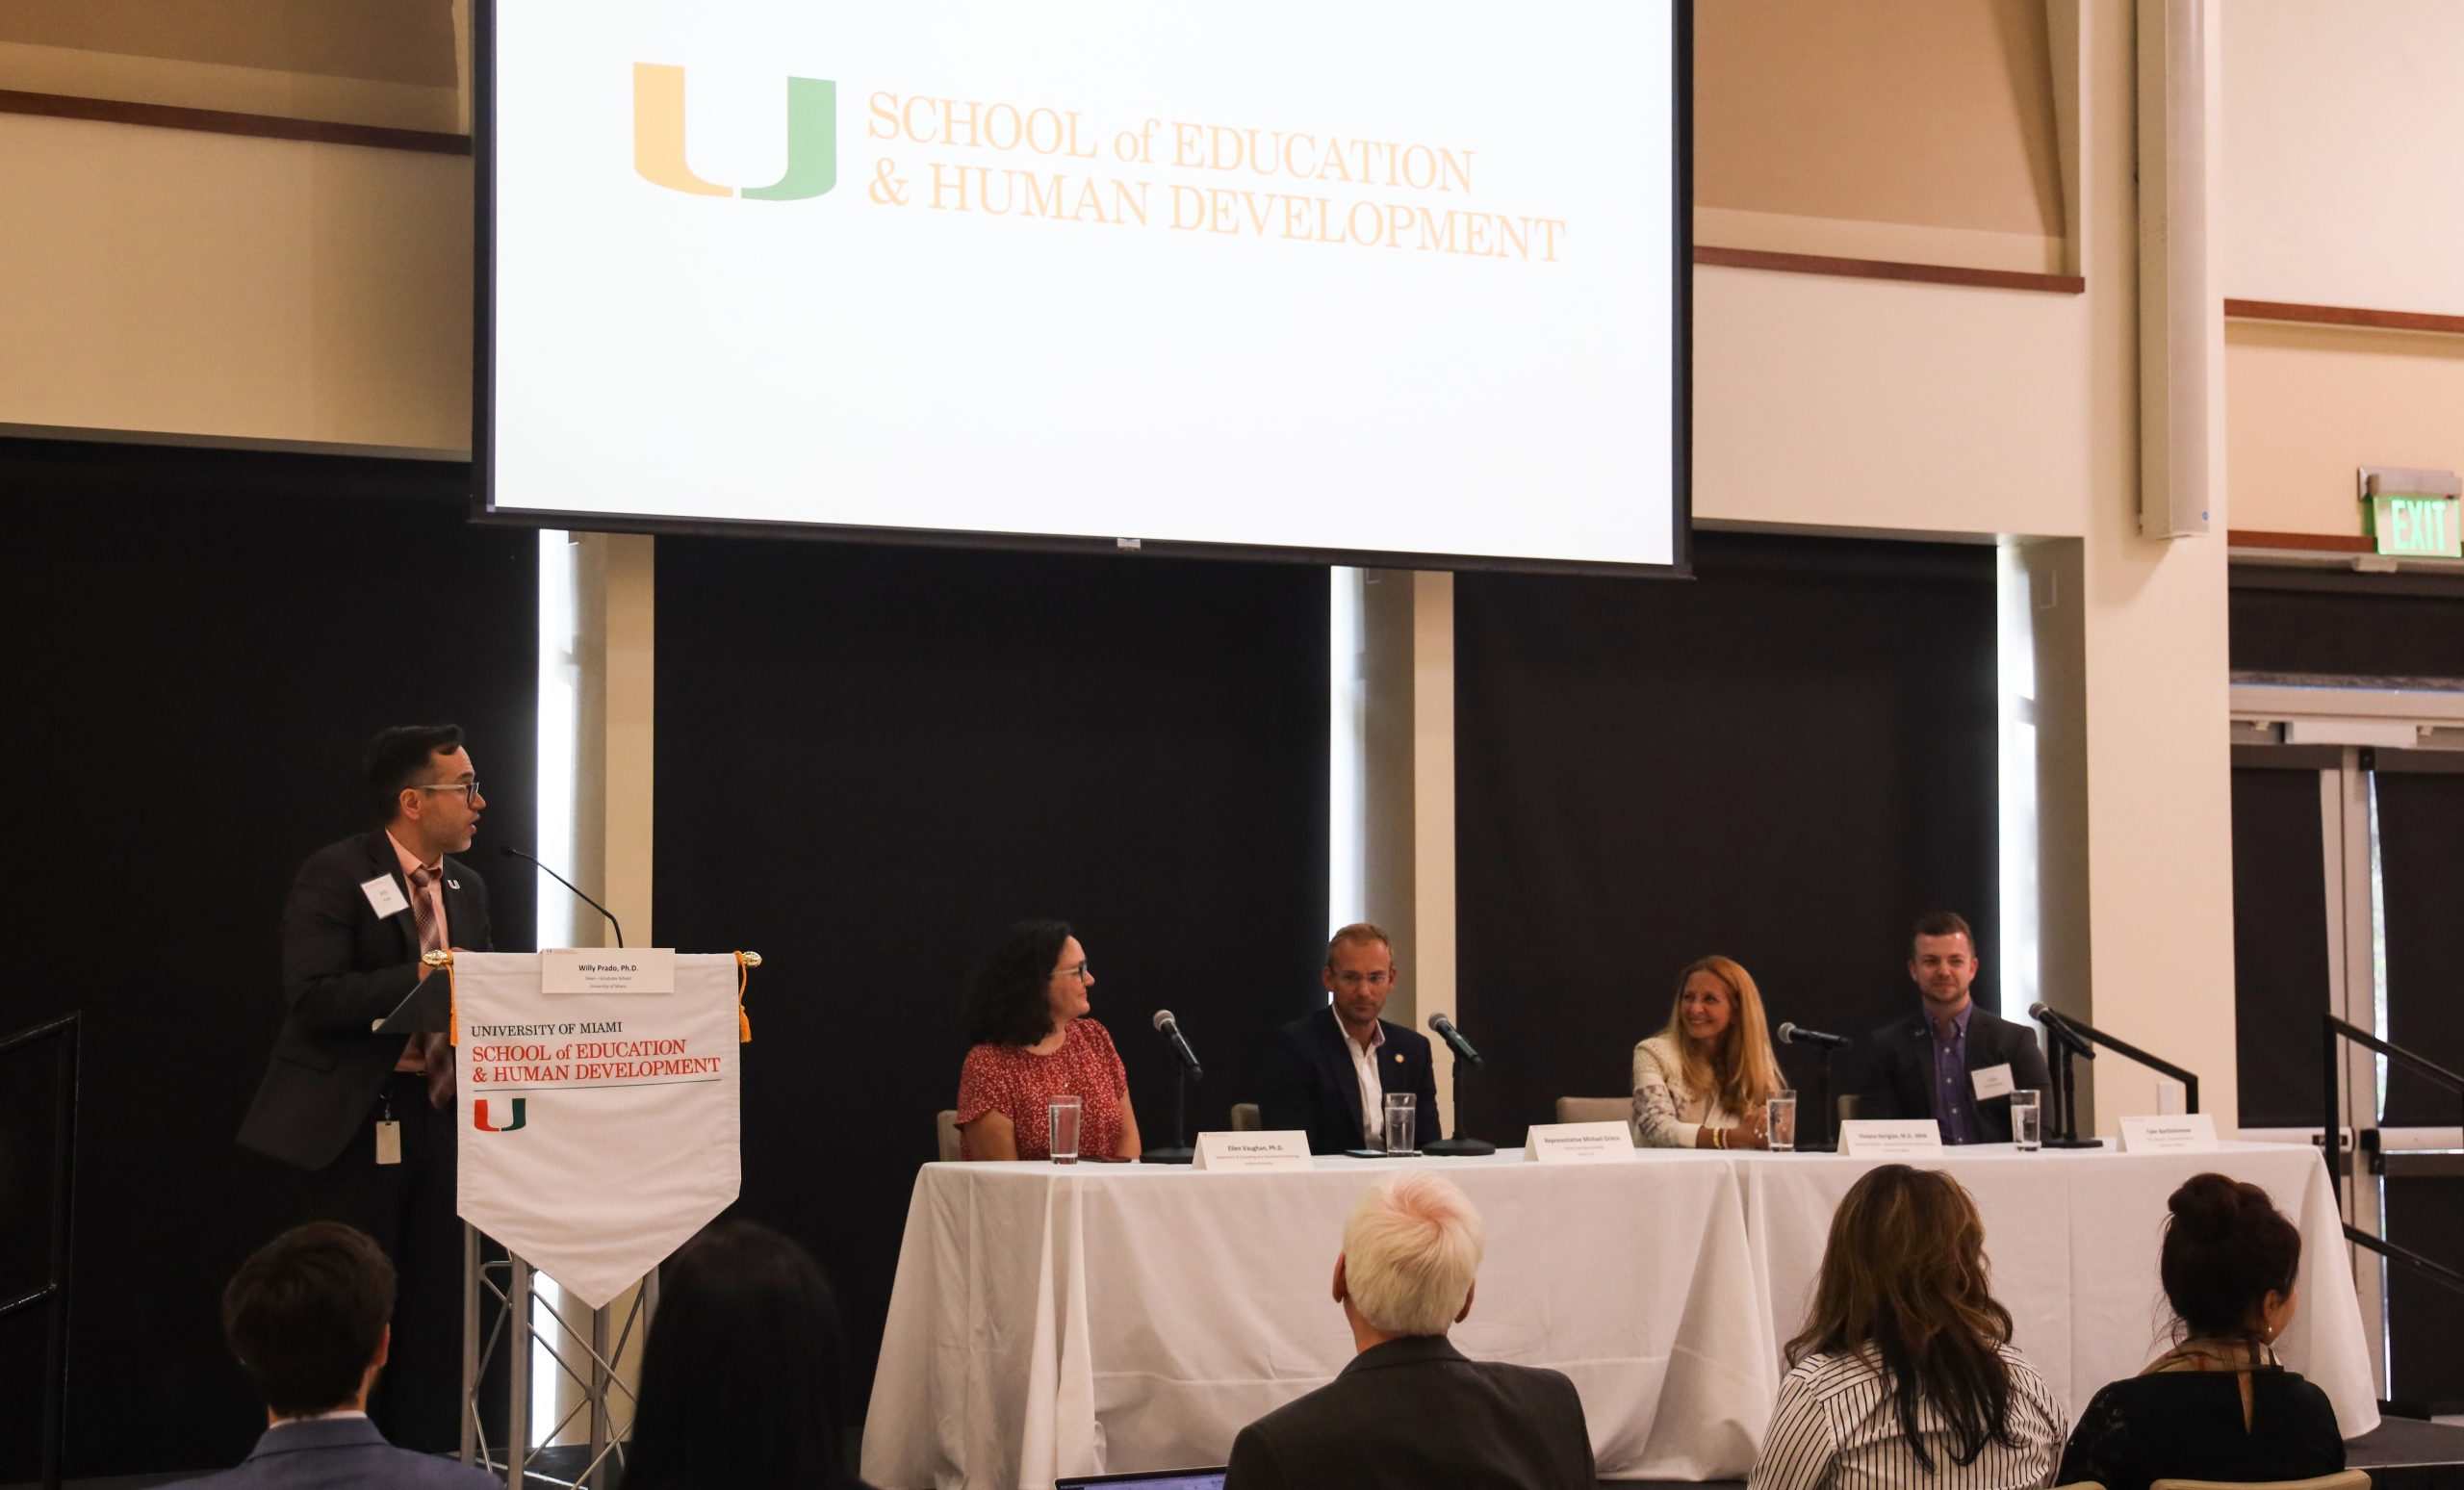 University of Miami School of Education and Human Development Leads Panel on Tackling the Opioid Epidemic